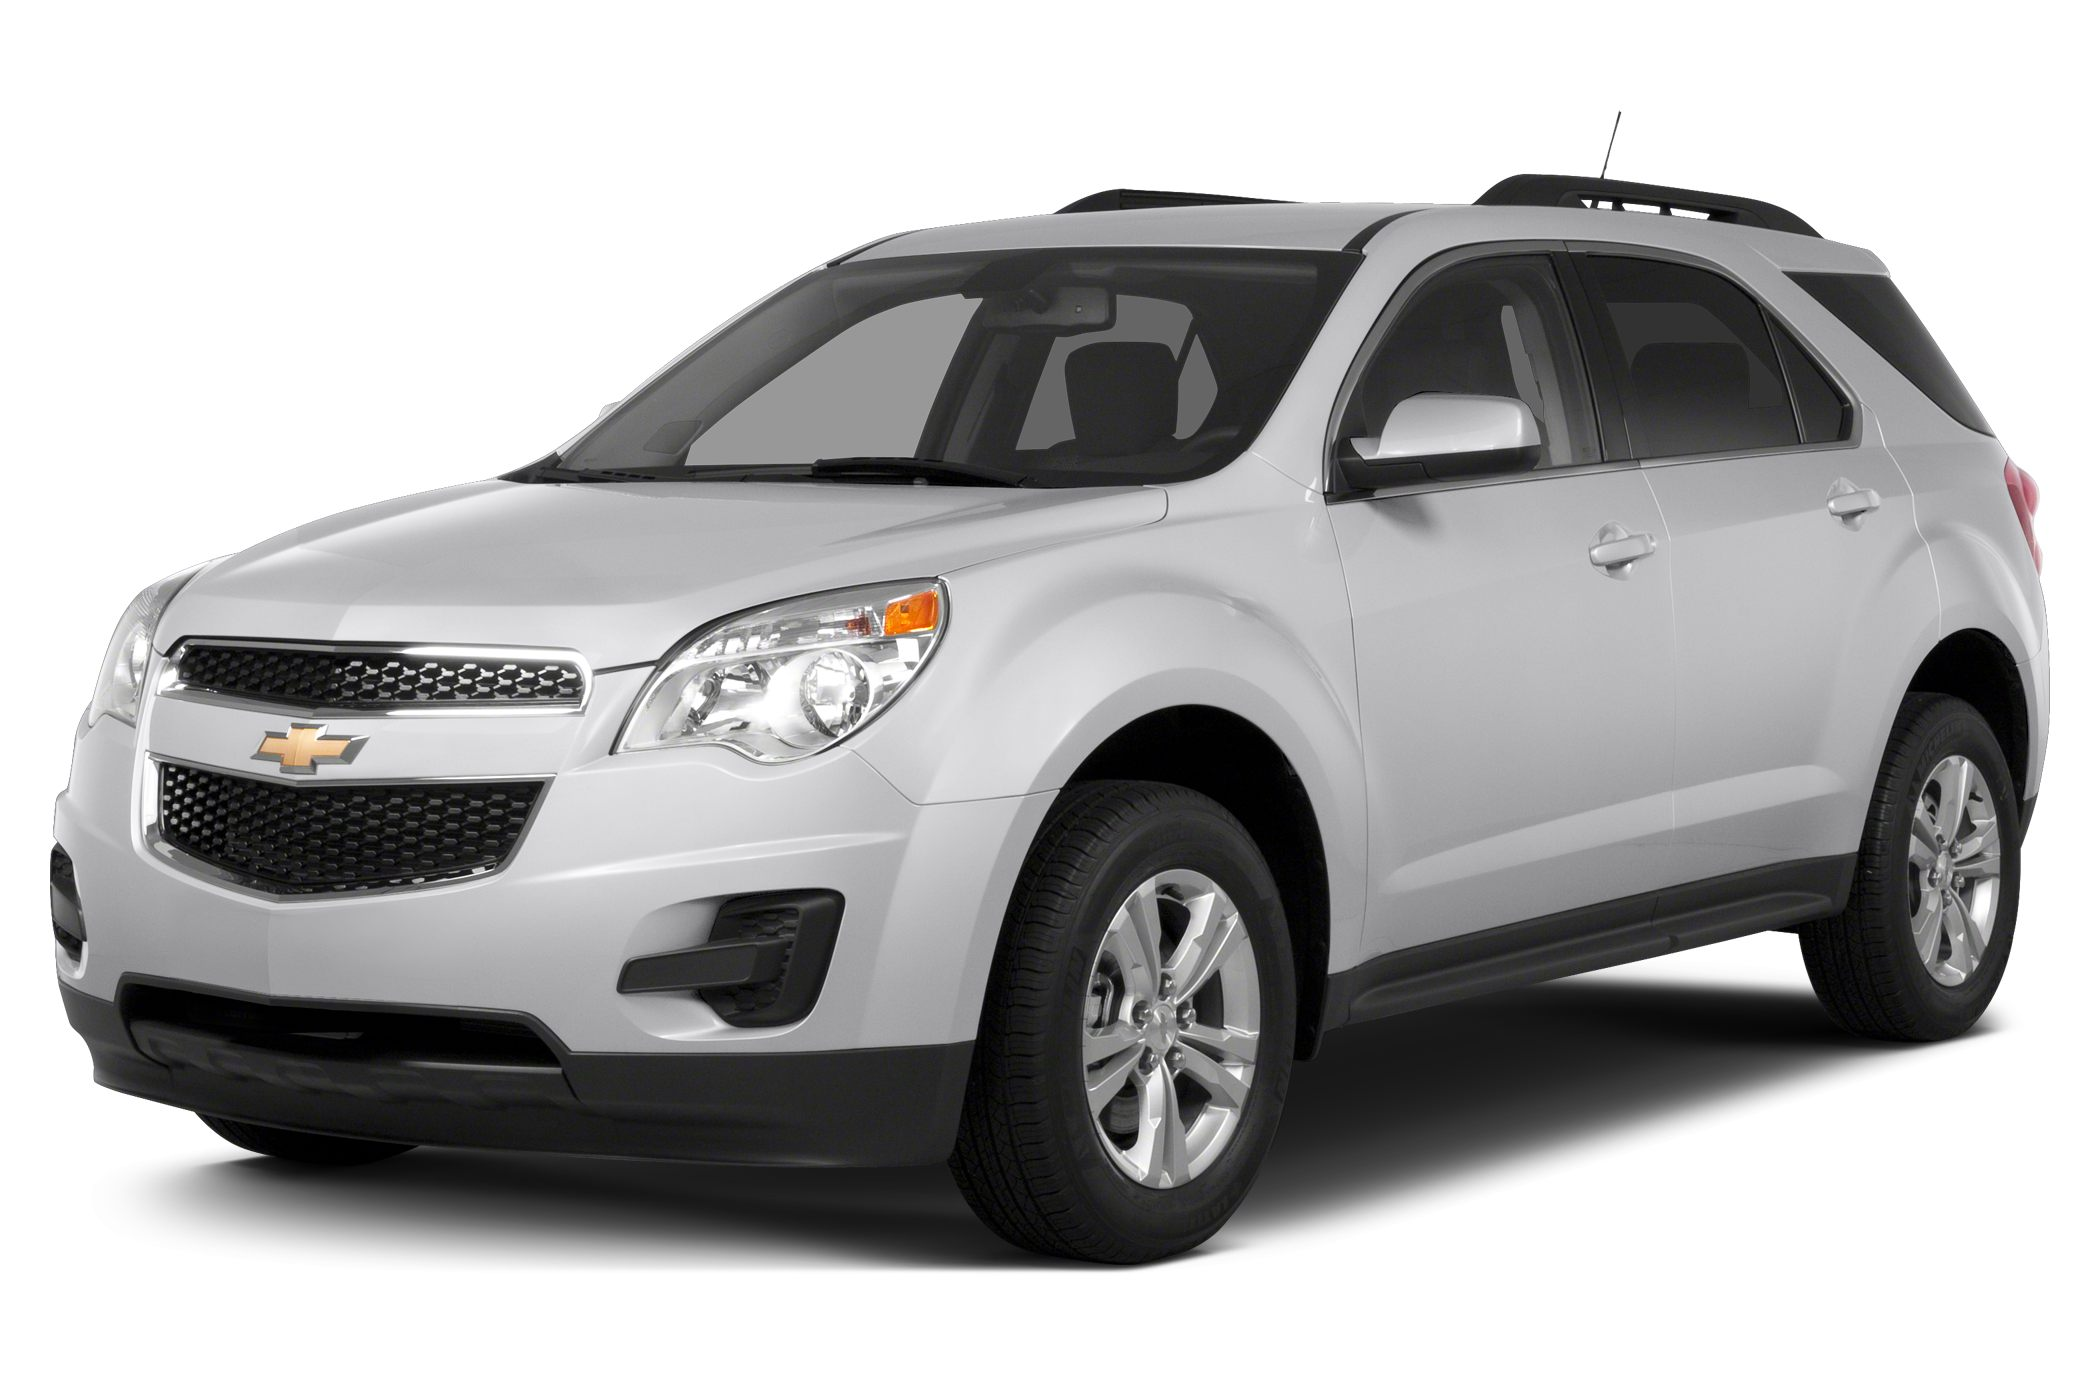 2015 Chevrolet Equinox 2LT SUV for sale in Battle Creek for $30,297 with 0 miles.